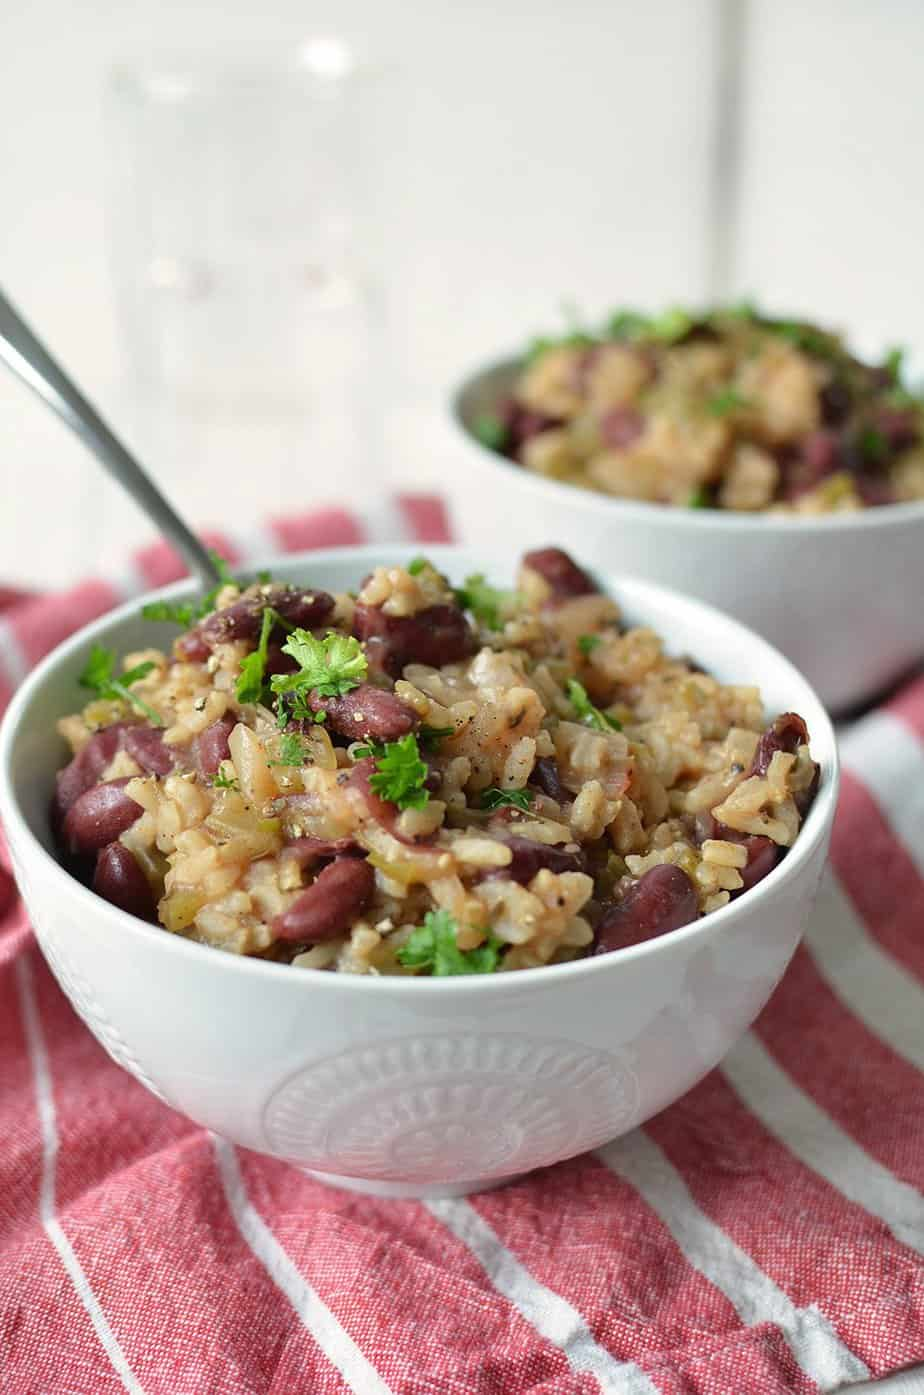 Vegan Red Rice And Beans